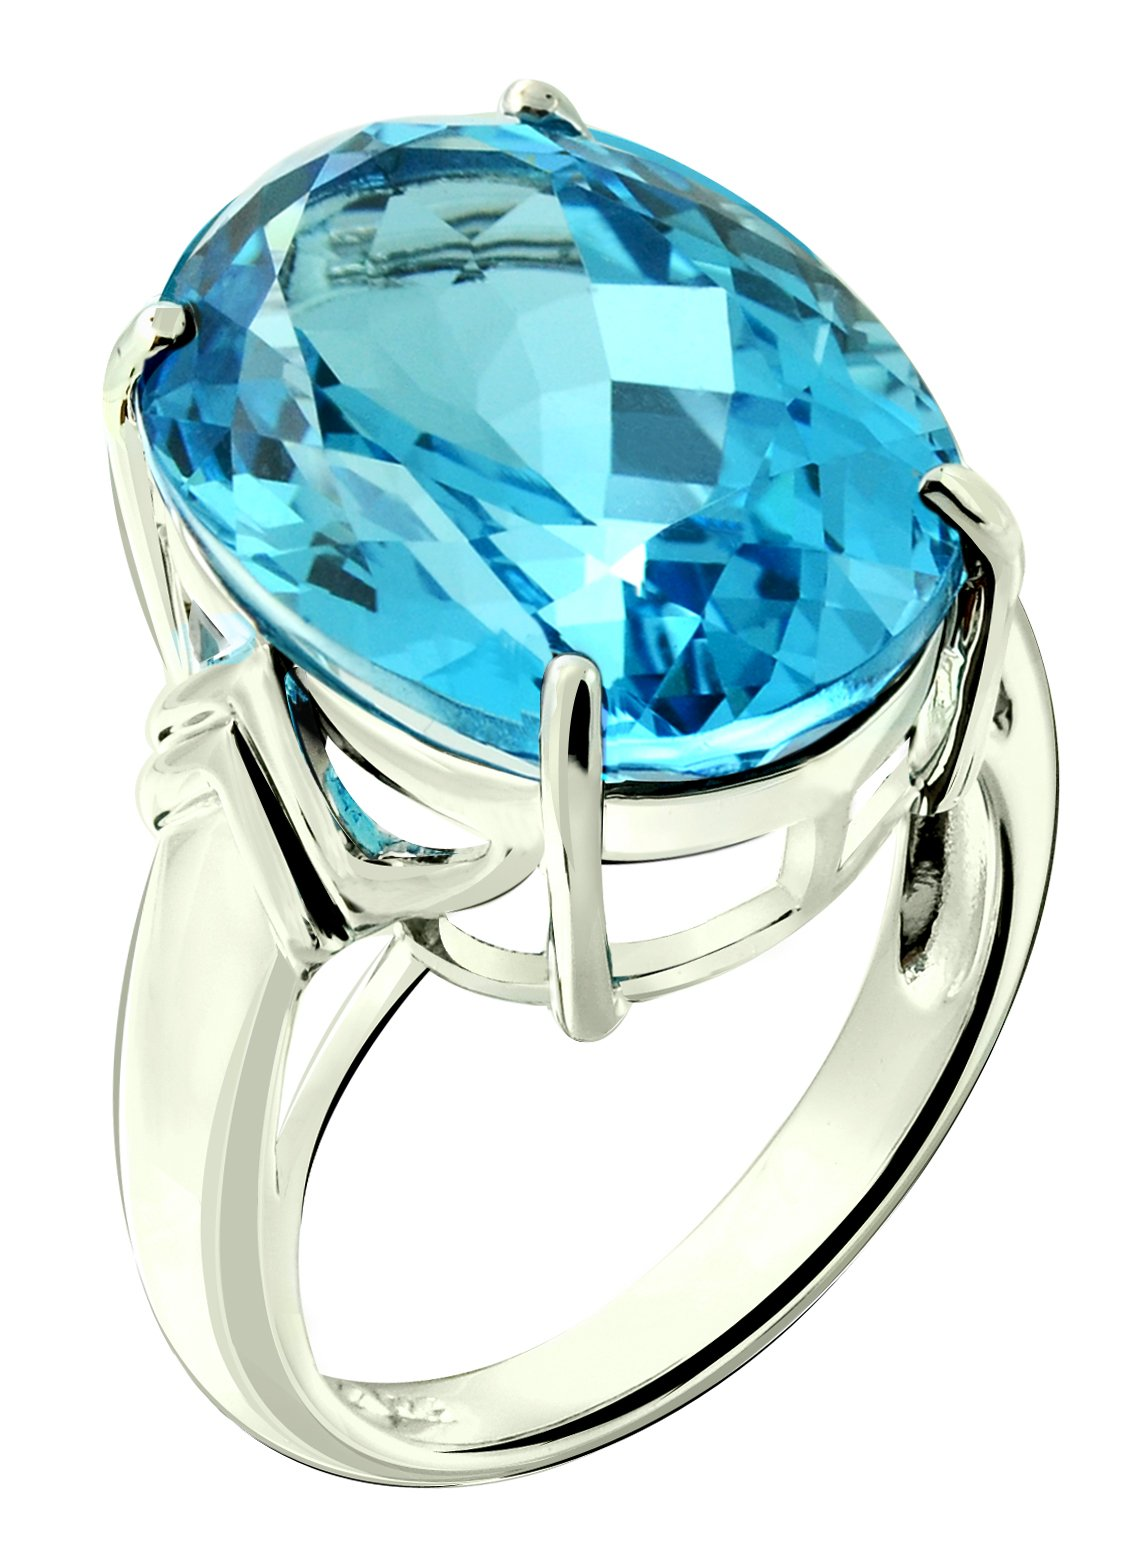 Sterling Silver 925 STATEMENT Ring GENUINE SWISS BLUE TOPAZ 22 Carats with RHODIUM-PLATED Finish (6, swiss-blue-topaz)